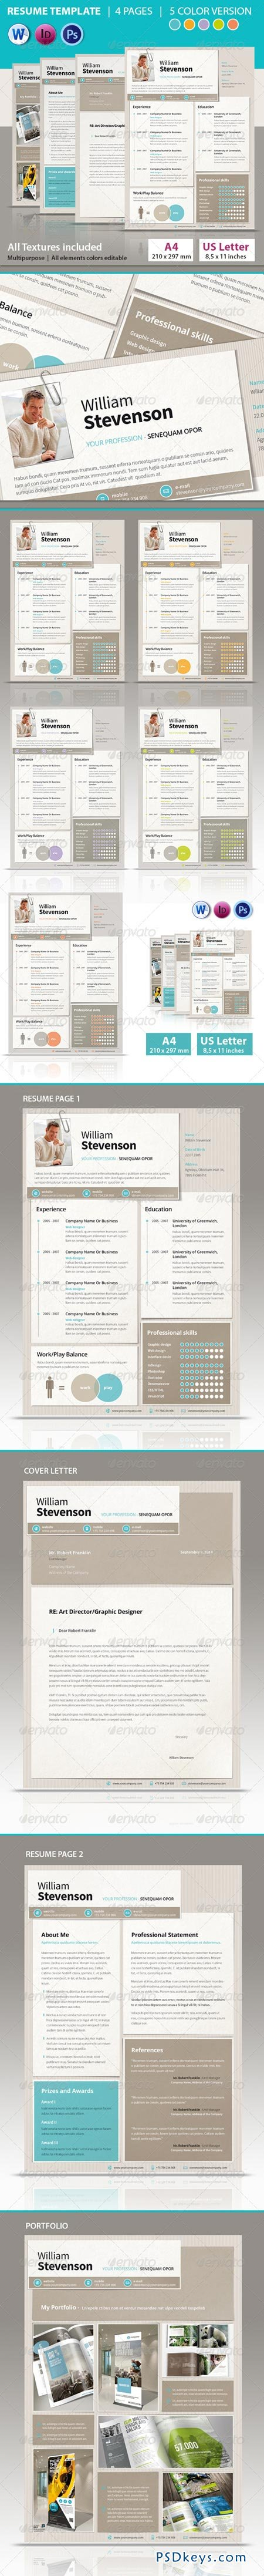 graphicriver resume 6926385 187 free photoshop